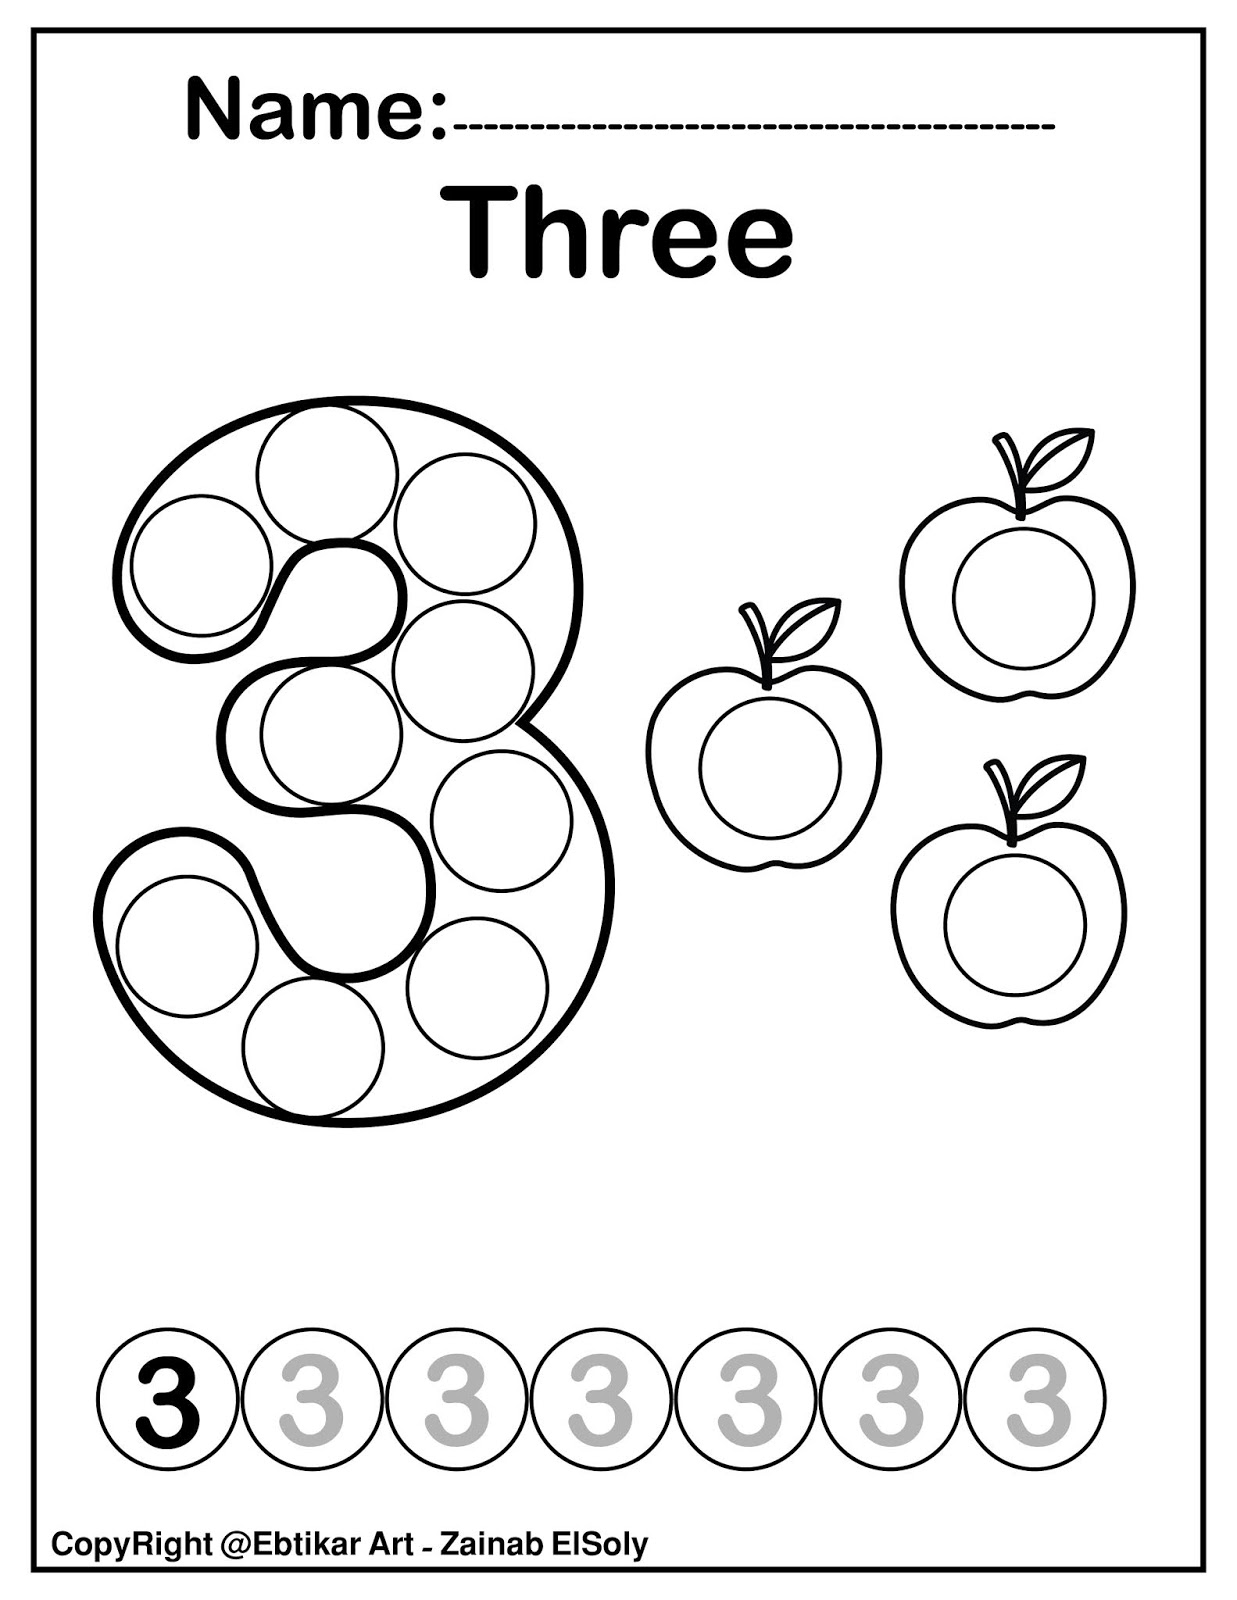 30 Number 3 Coloring Sheets